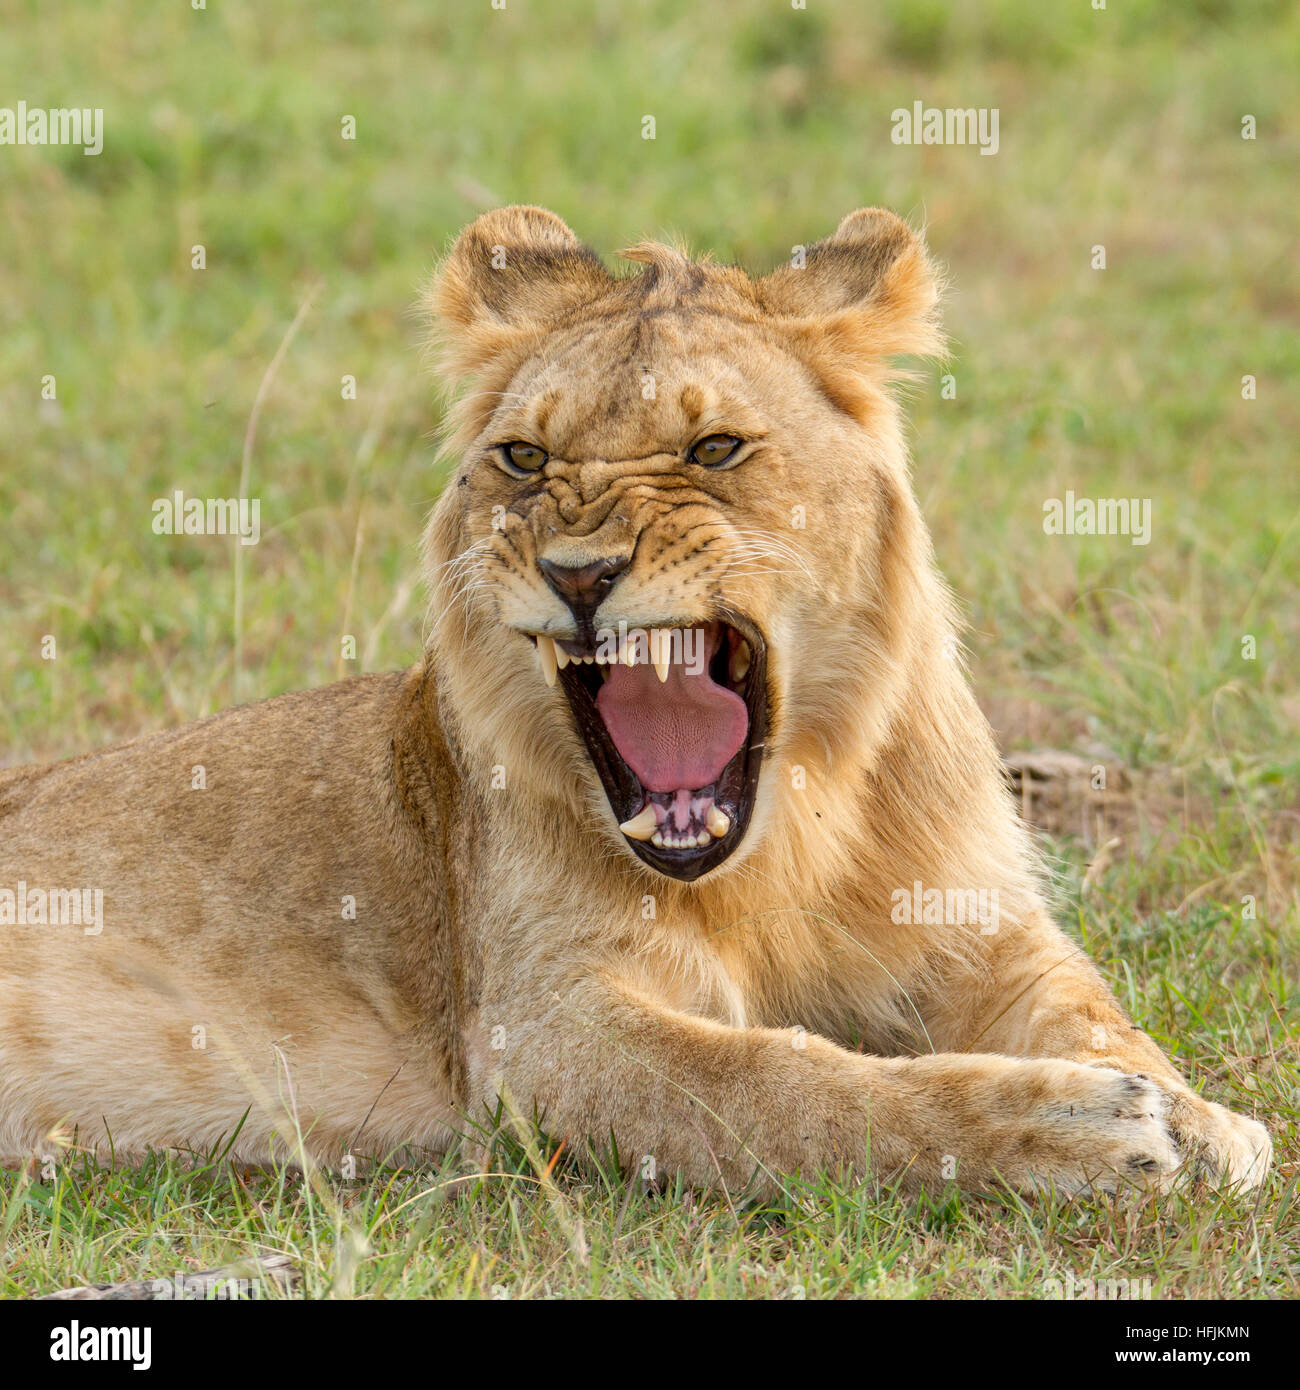 young male lion snarling, closer, Mara Naboisho Conservancy Kenya Africa - Stock Image